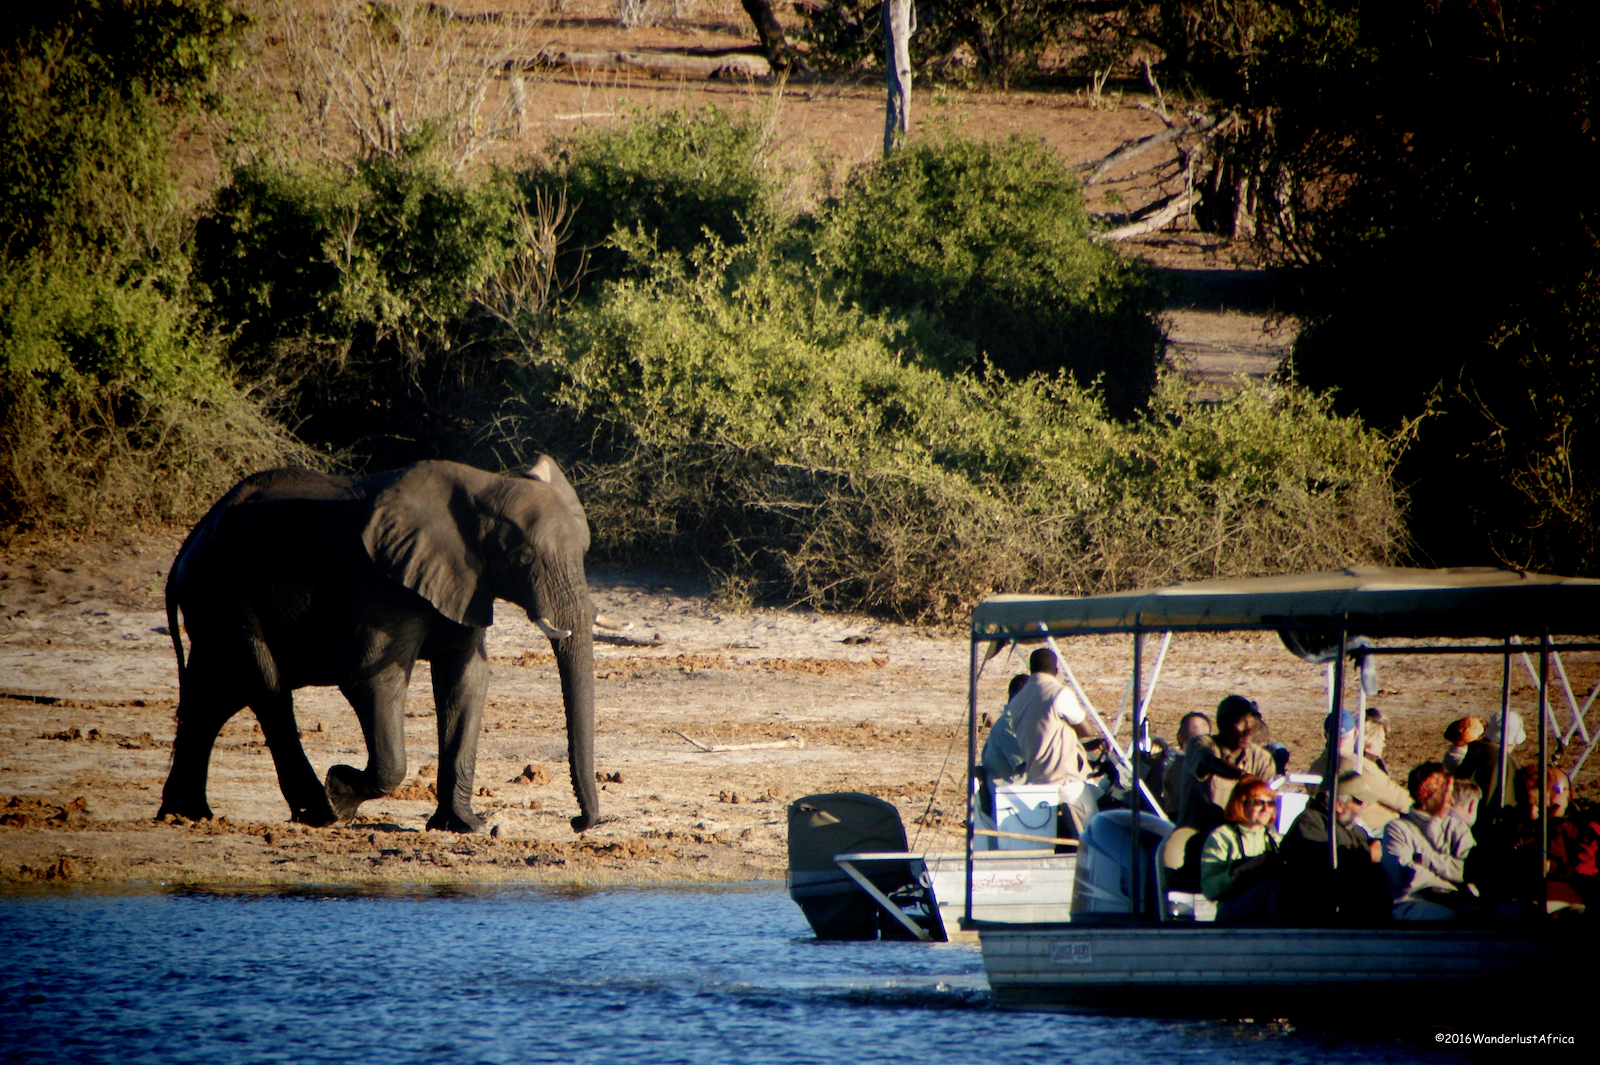 Boot-Safari, Botswana, Chobe River Front, Elephants